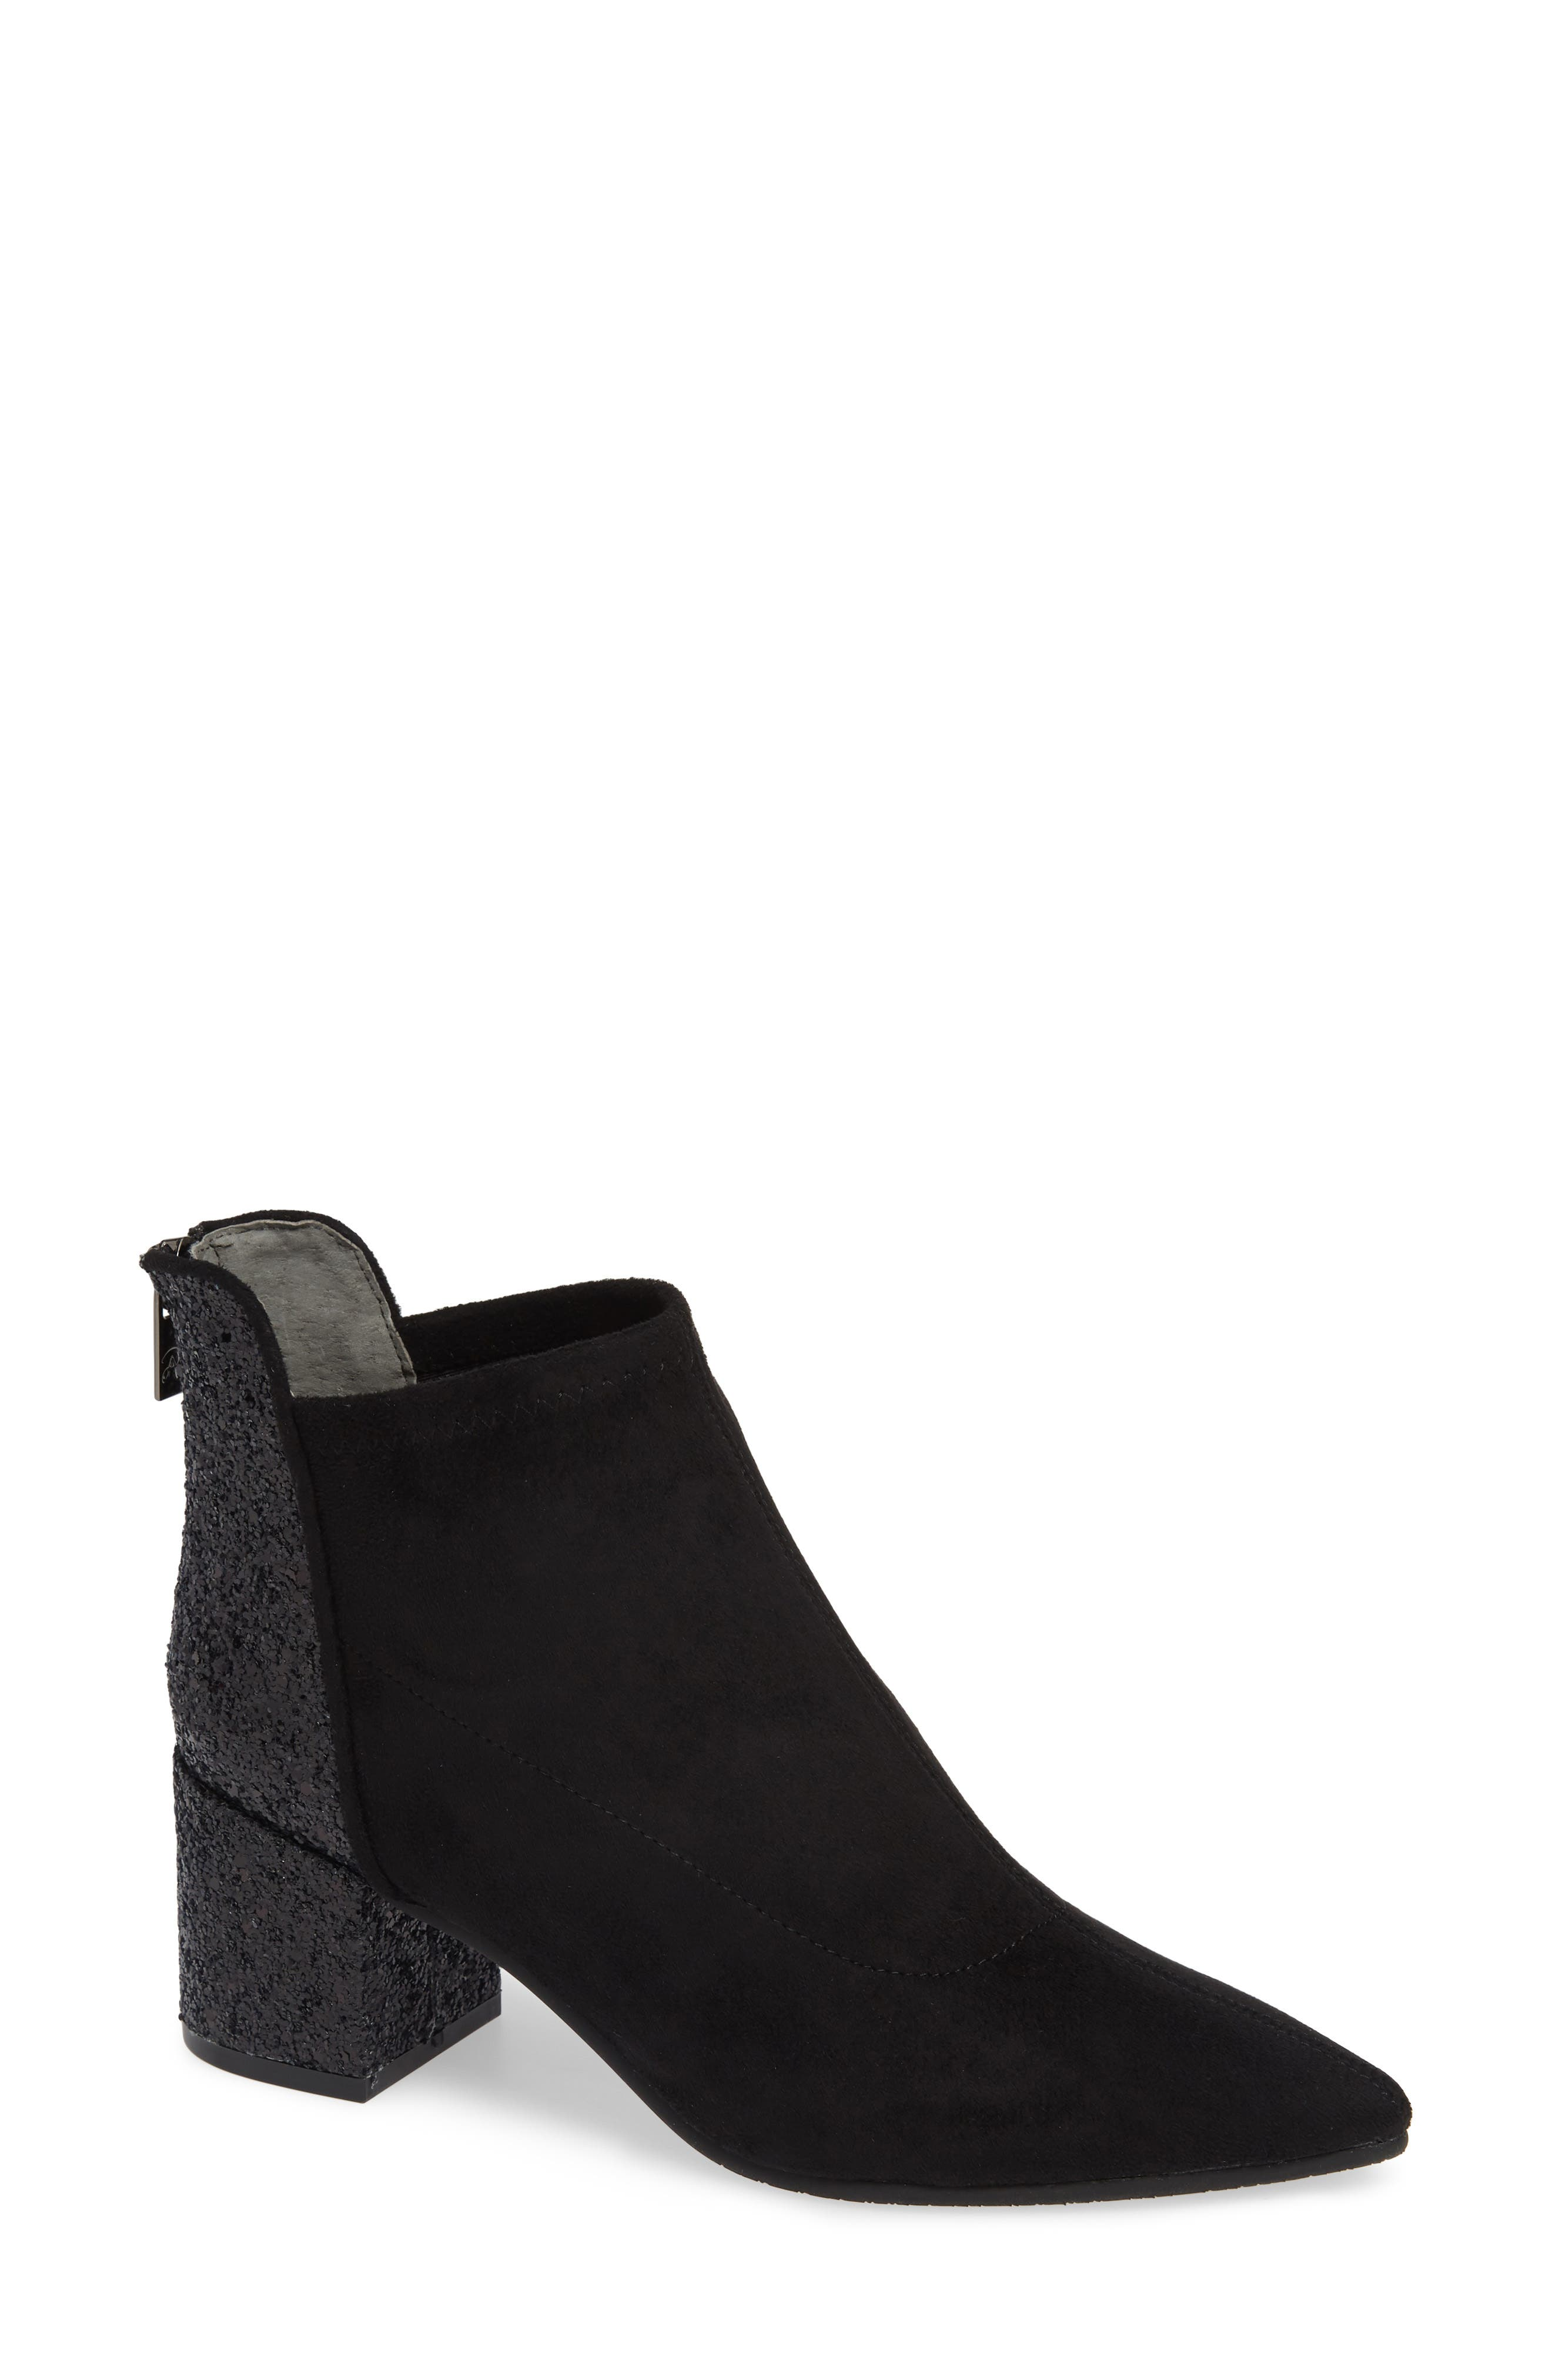 ADRIANNA PAPELL Honey Pointy Toe Stretch Bootie in Black Microsuede